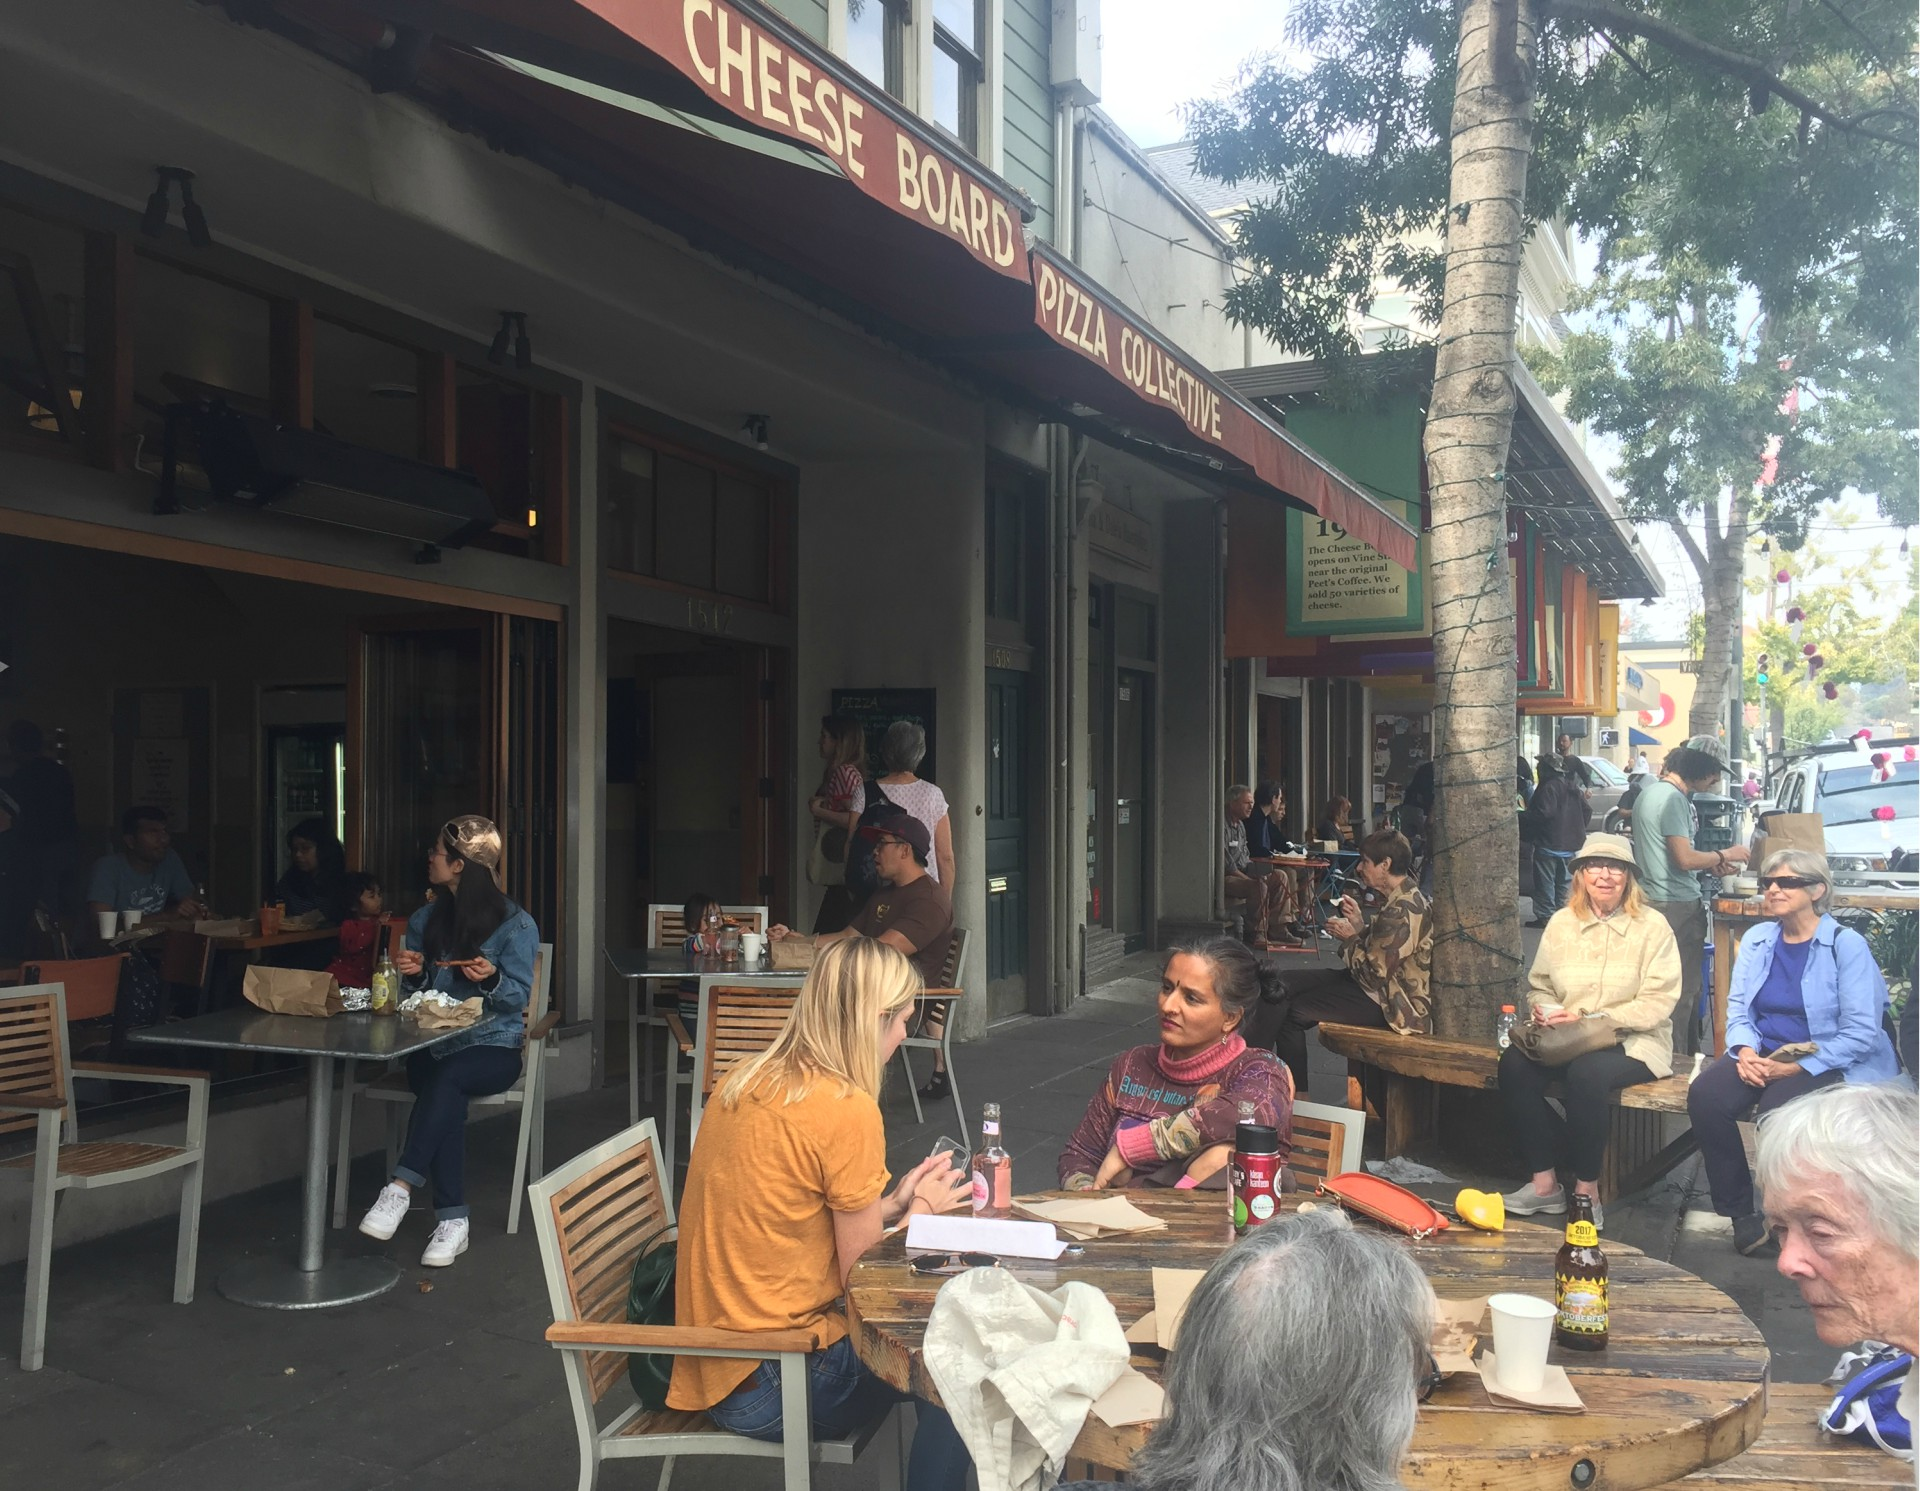 Customers enjoy a sunny afternoon at Cheeseboard in North Berkeley.